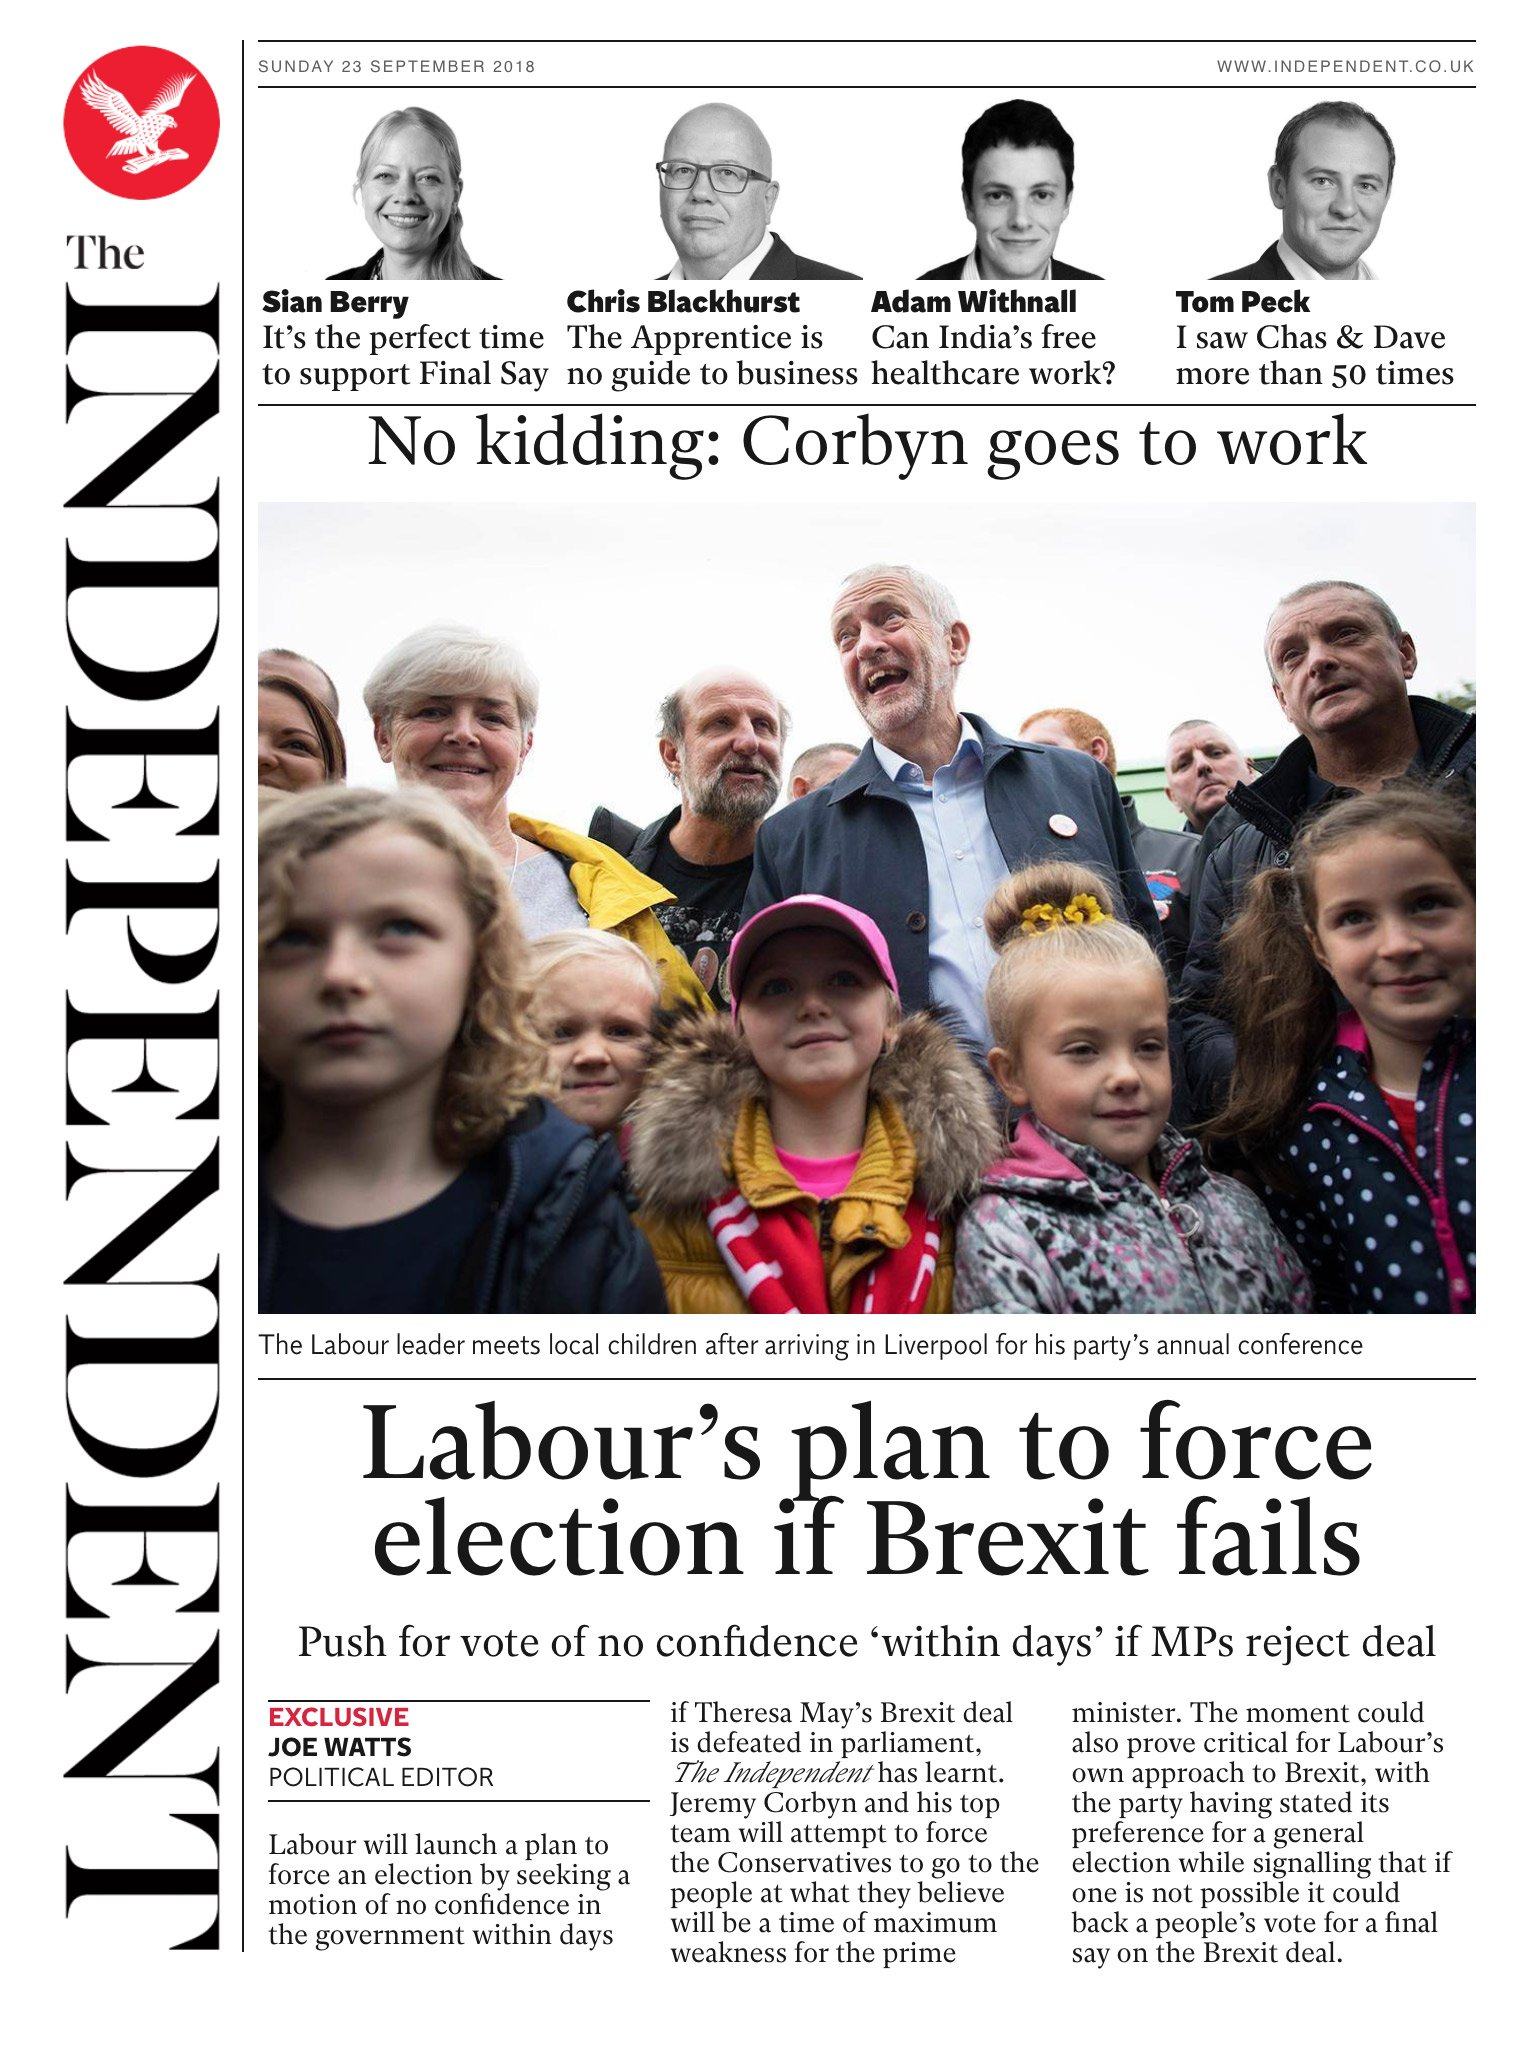 Tomorrow's @Independent front page #tomorrowspaperstoday To subscribe to the daily edition: https://t.co/ozdV9Zd9Si https://t.co/pui00k5VFO